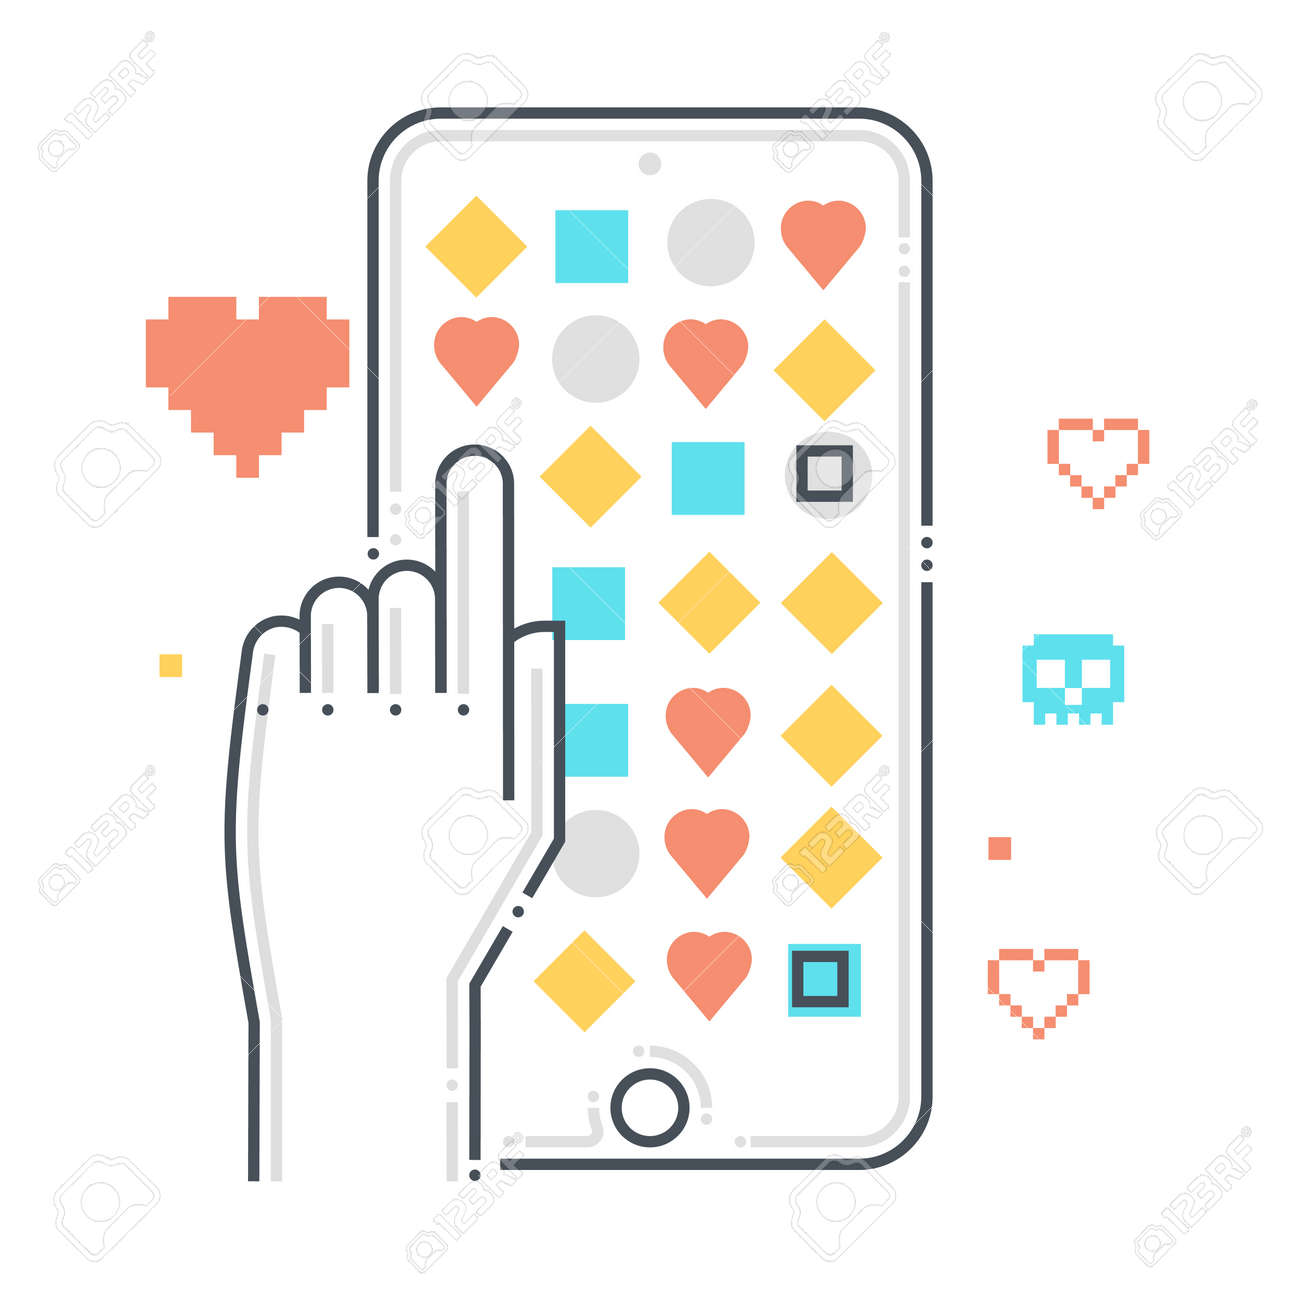 Mobile game related color line vector icon, illustration. The icon is about touch, mobile phone, application, store, points. The composition is infinitely scalable. - 163695983